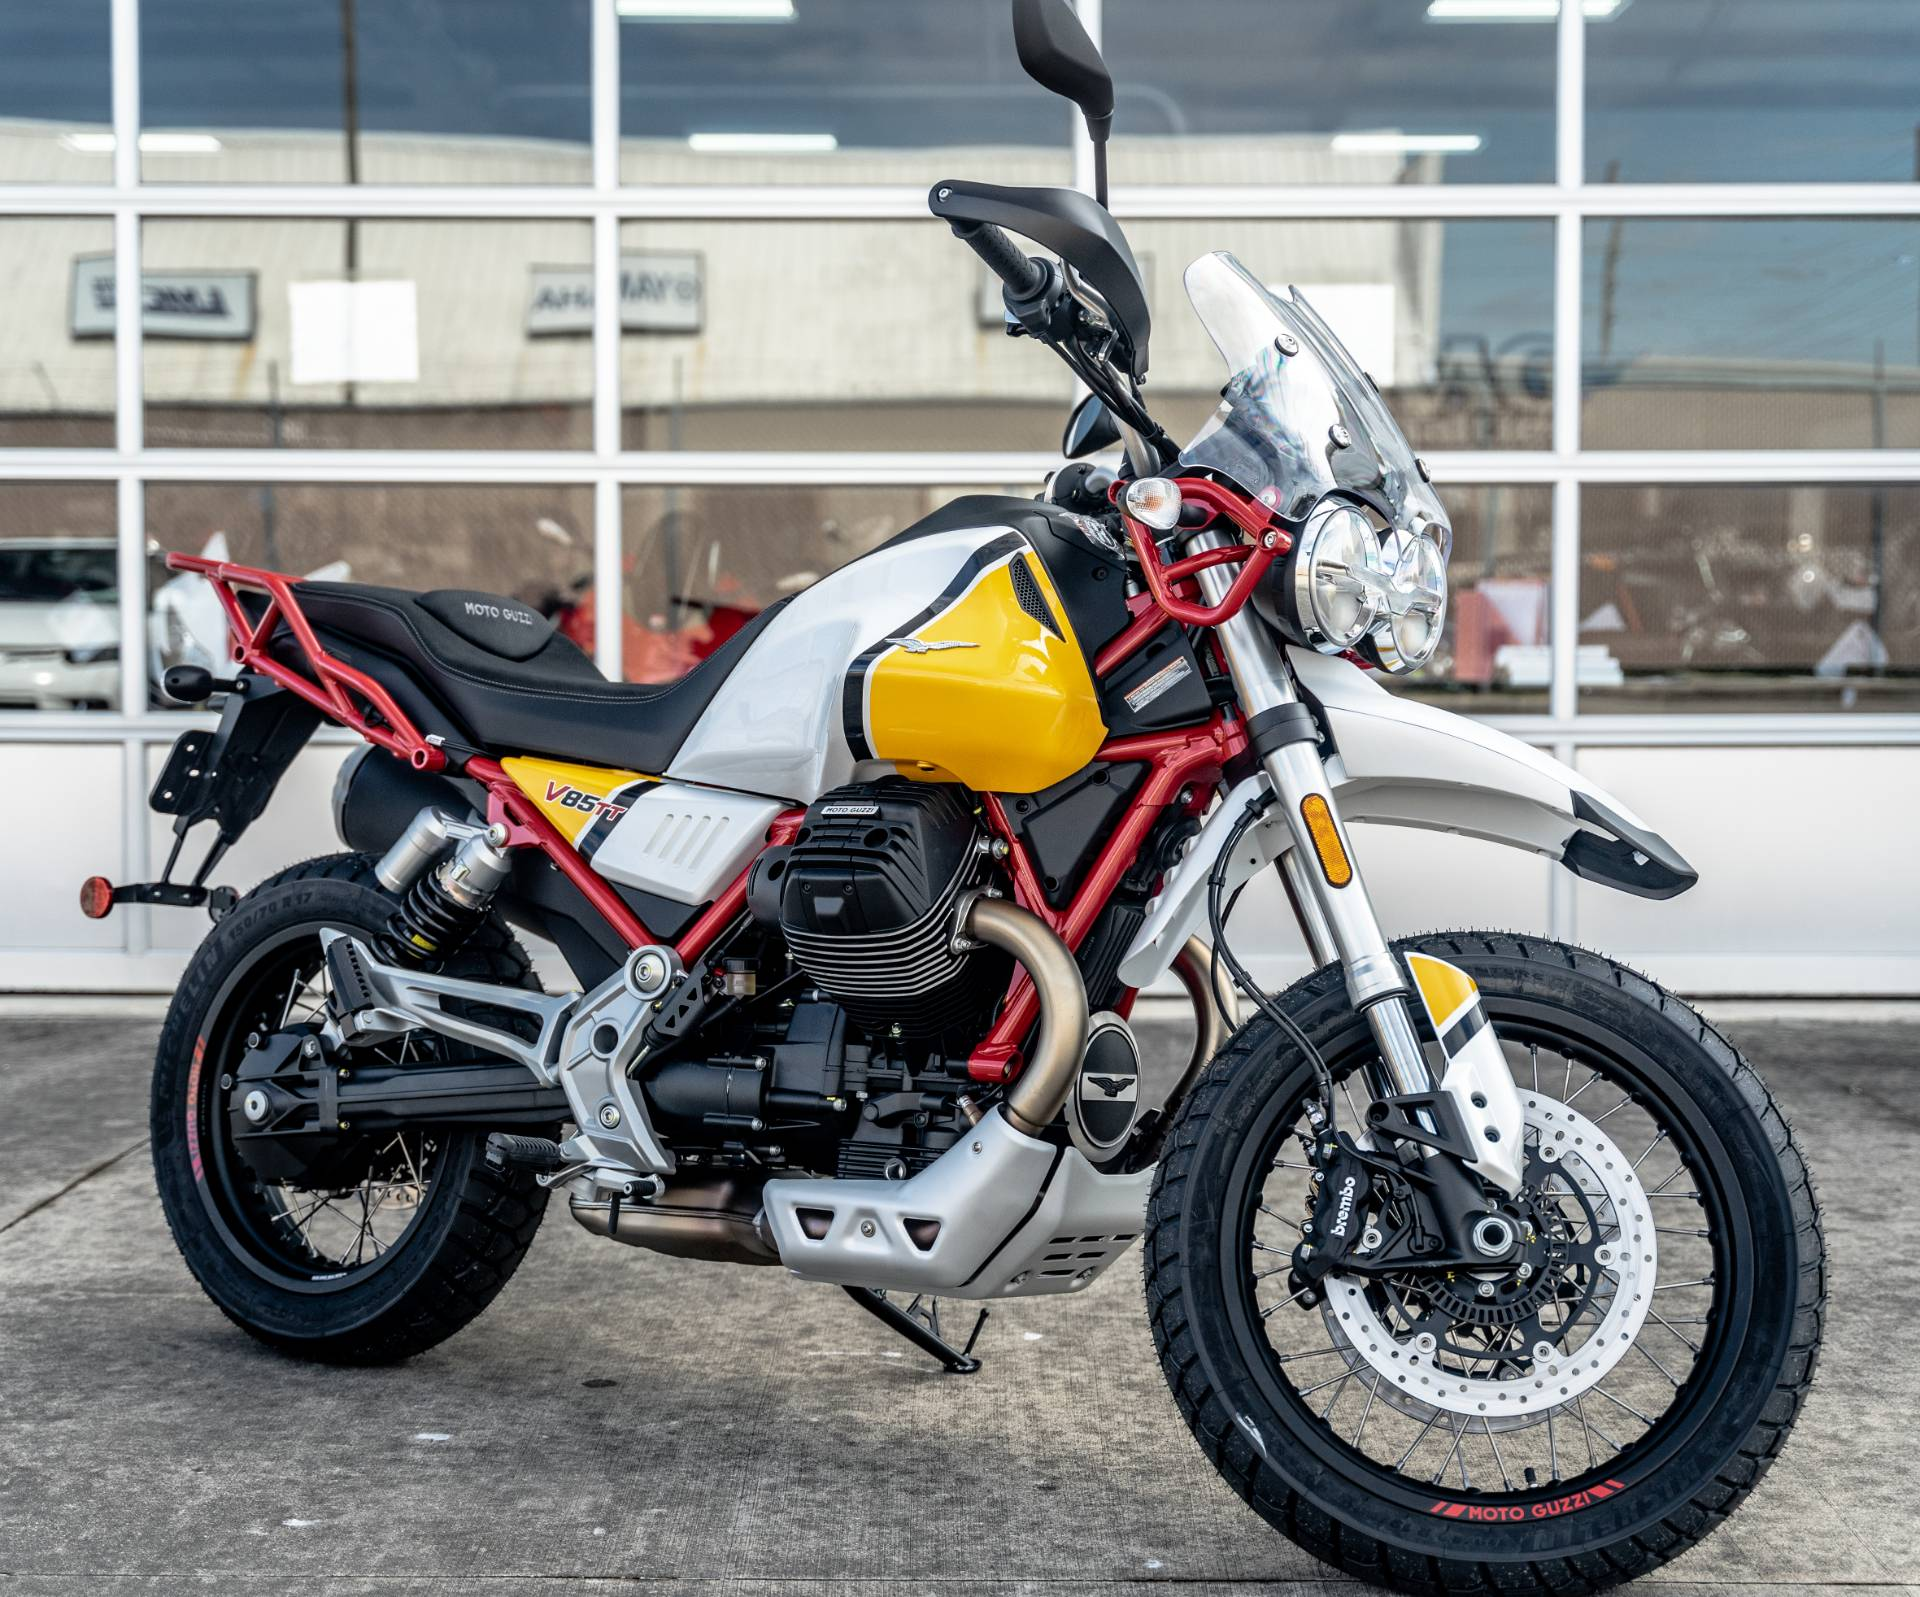 2020 Moto Guzzi V85 TT Adventure in Houston, Texas - Photo 1